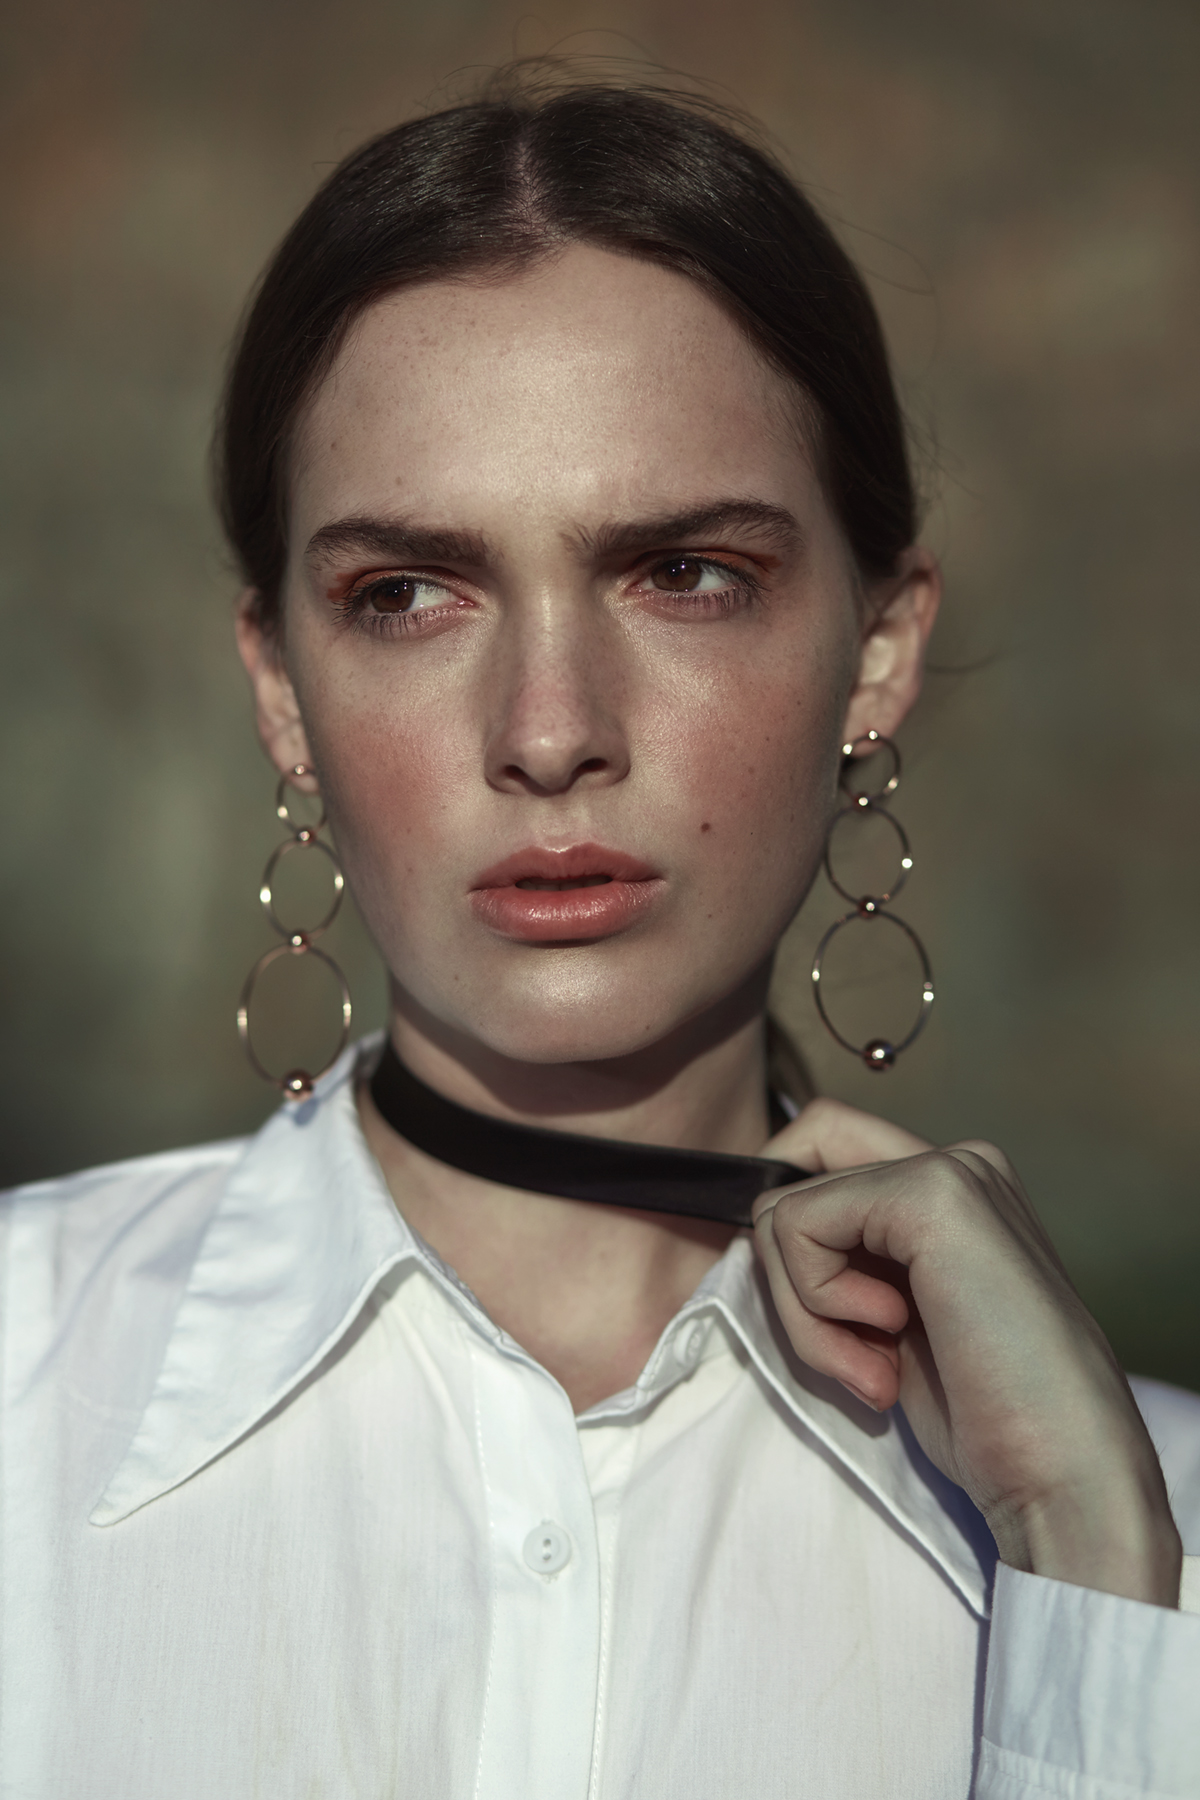 White shirt,Amanda Laird Cherry; black tie (worn as a choker) and rose-gold hoop earrings, stylist's own